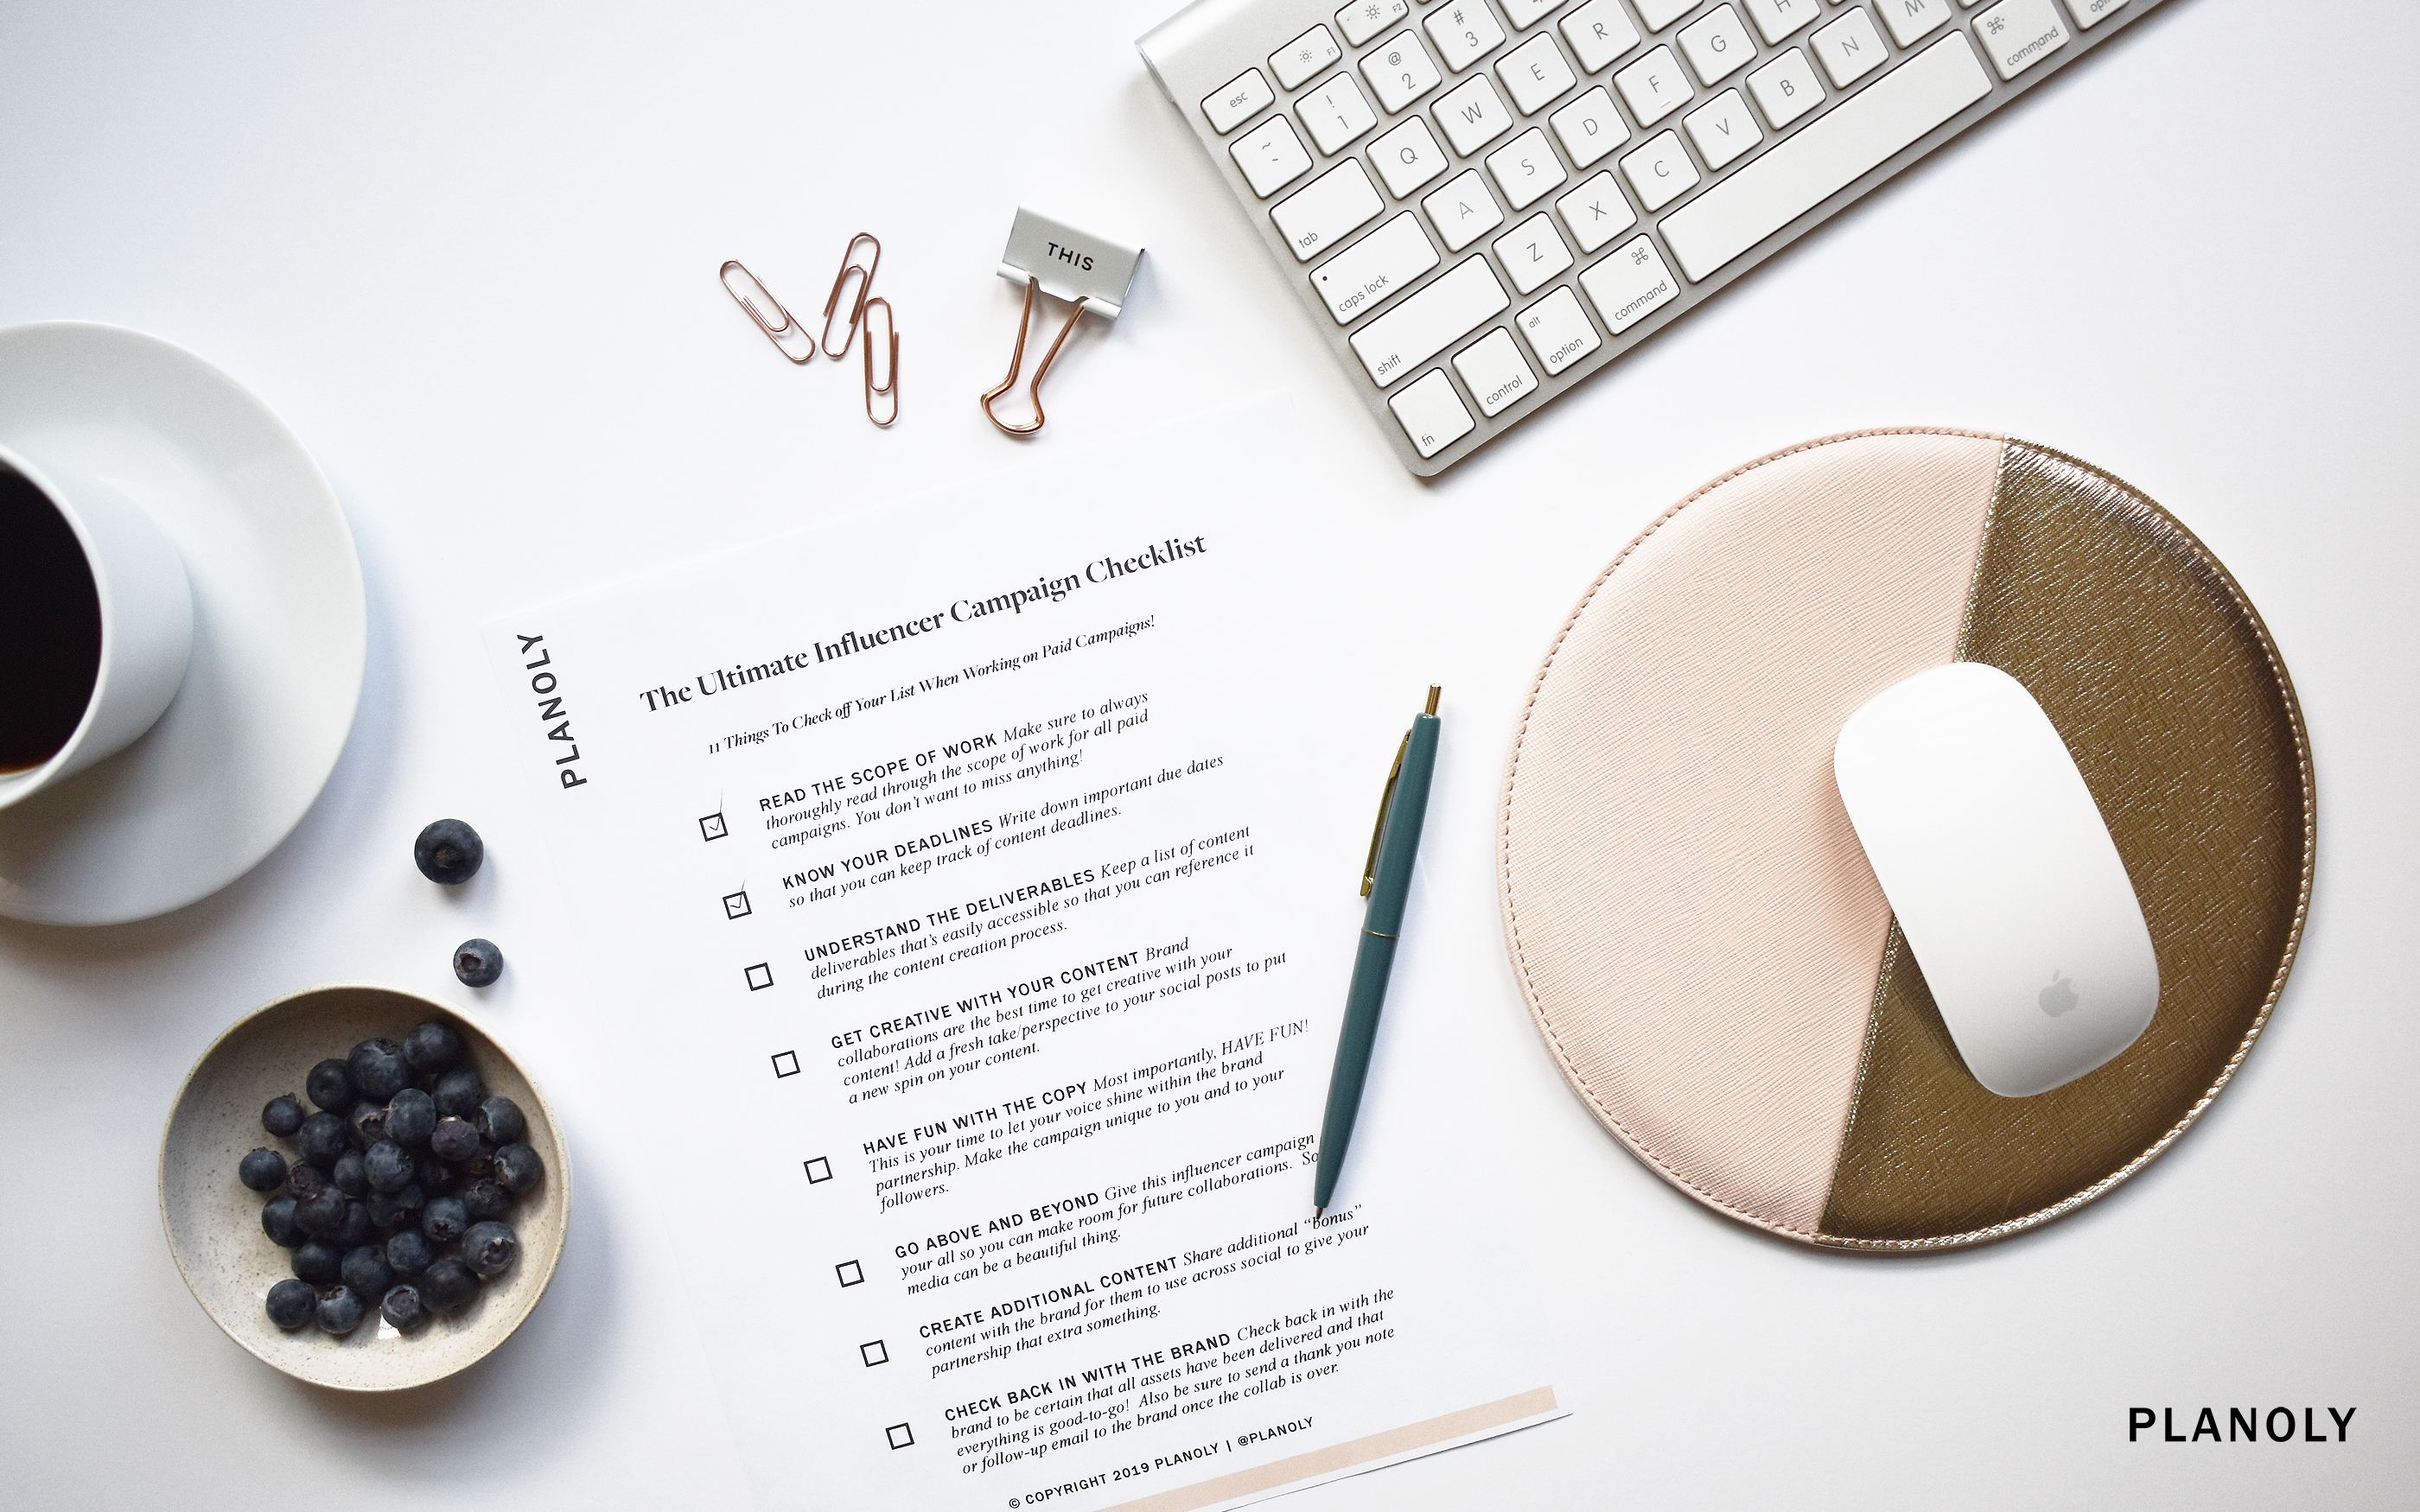 The Ultimate Influencer Campaign Checklist